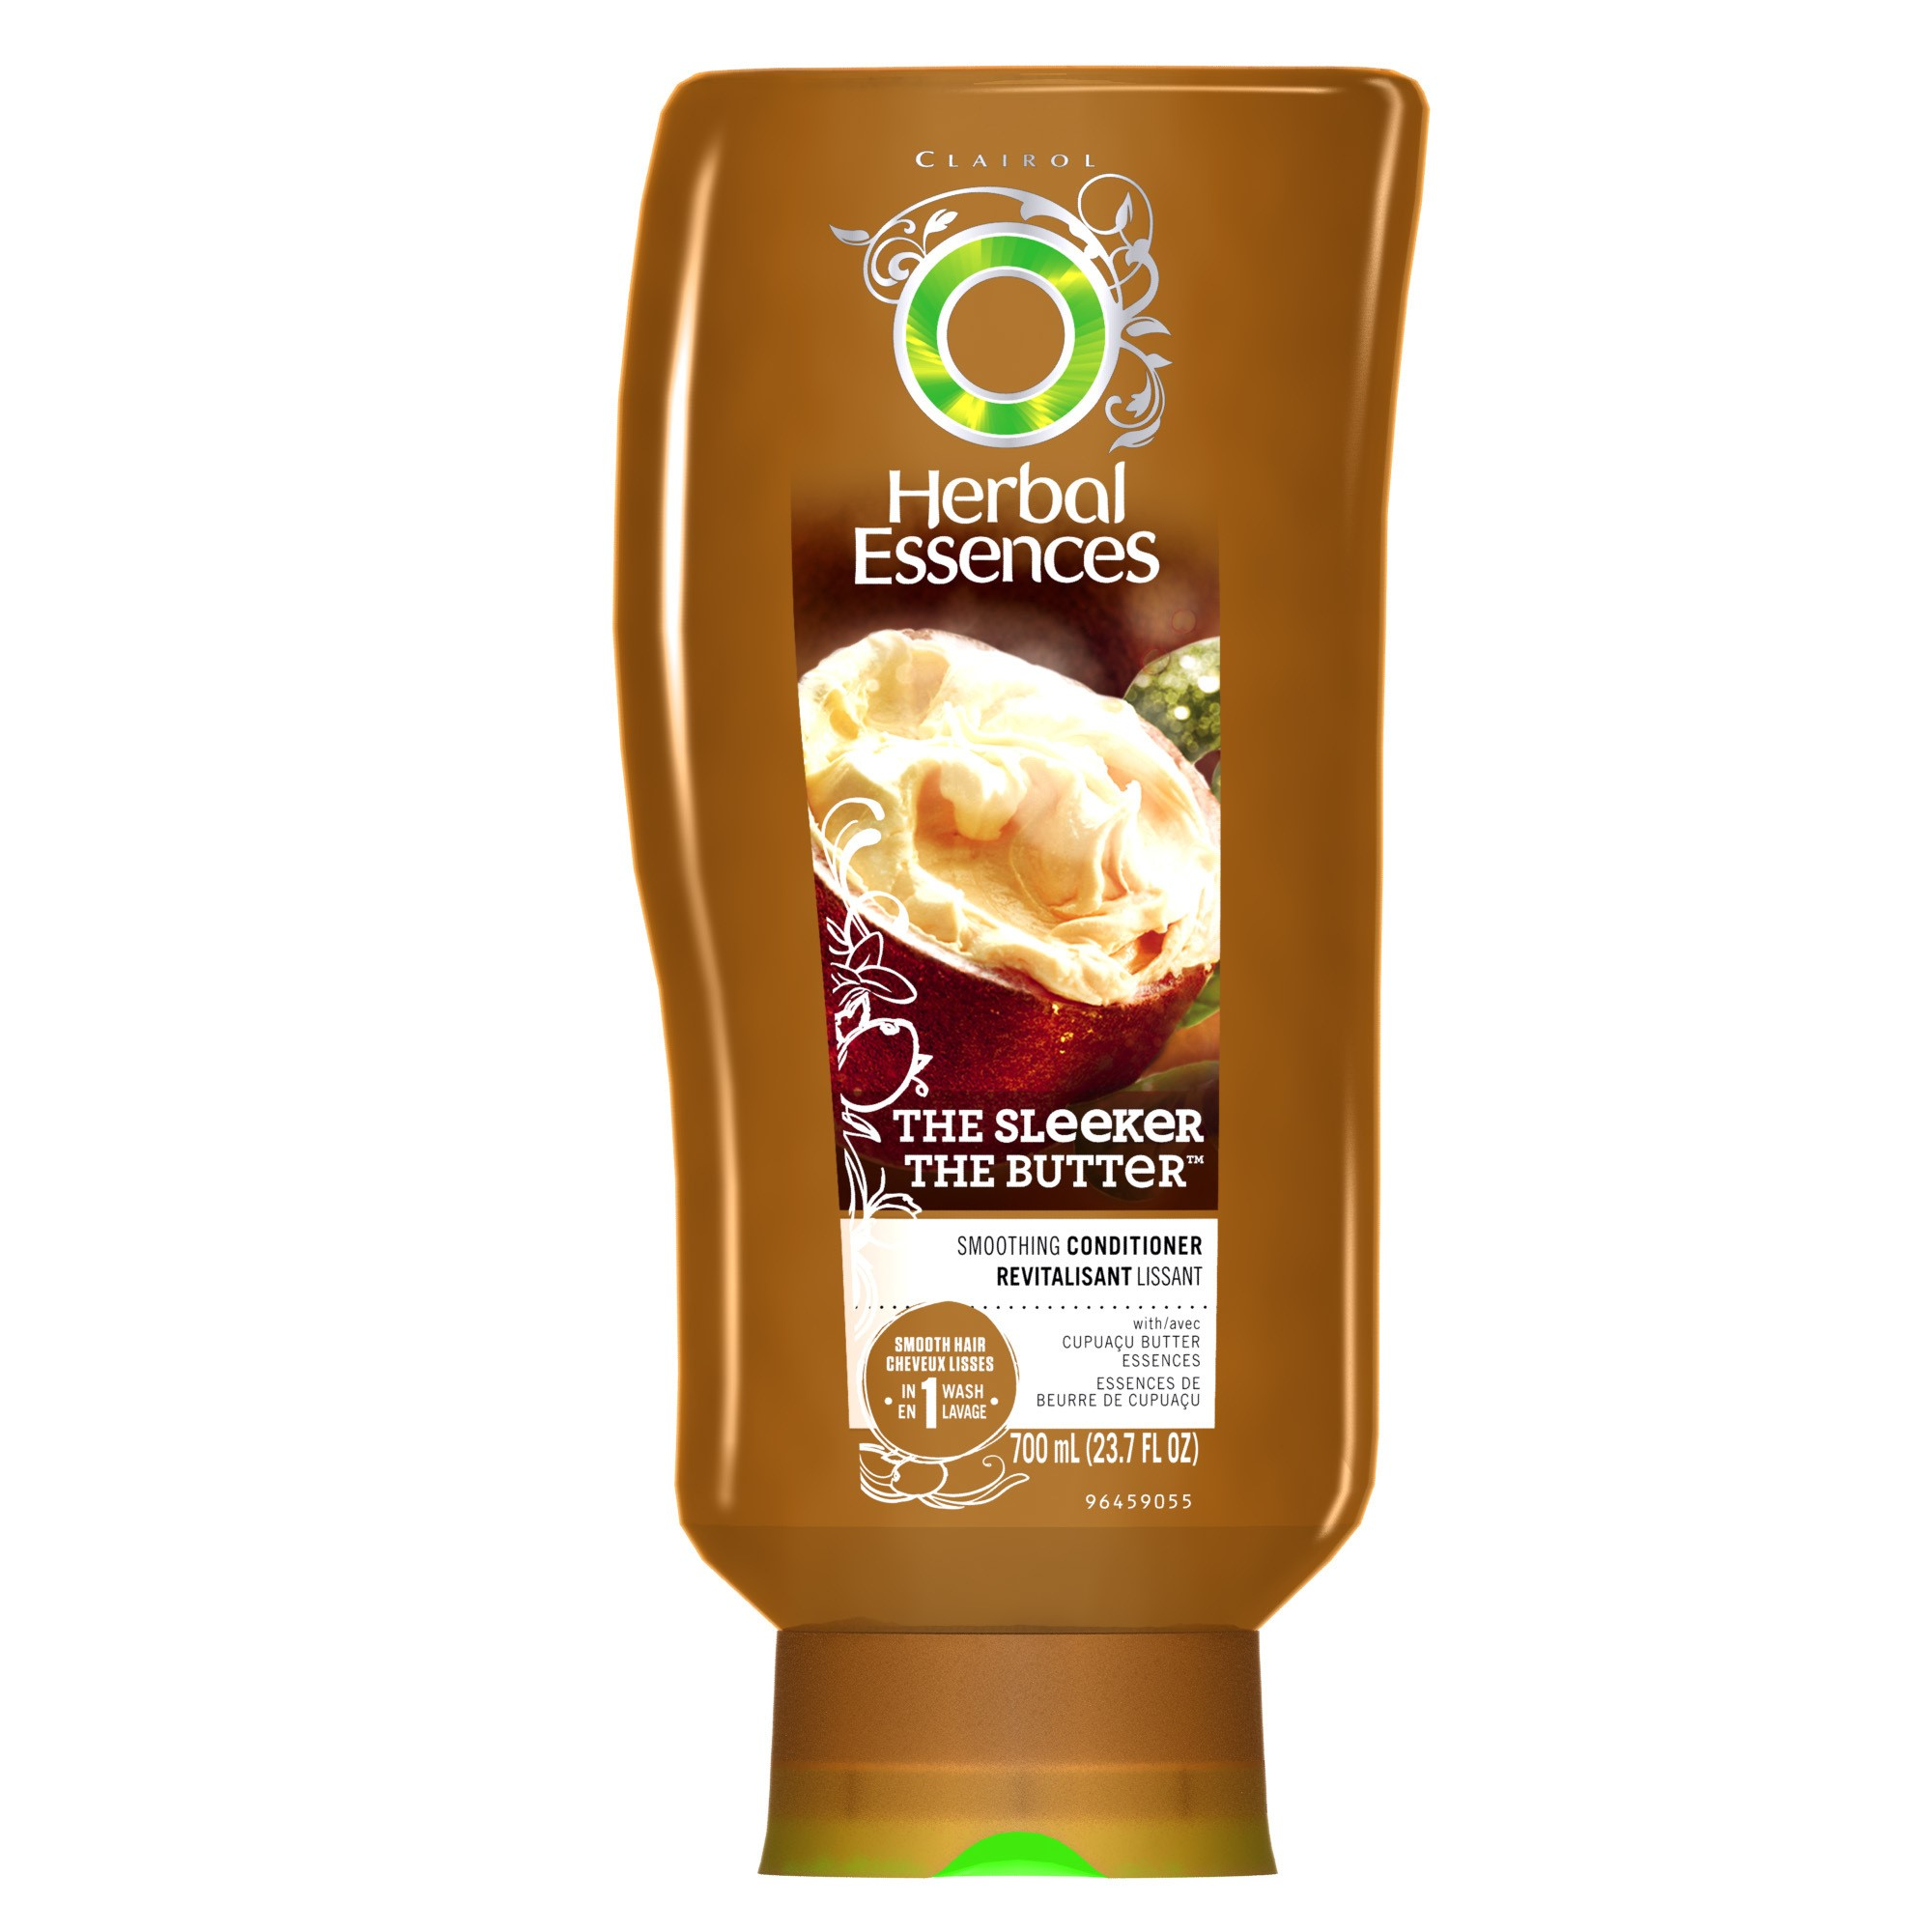 Herbal Essences The Sleeker The Butter Smoothing Conditioner, 23.7 Fl Oz